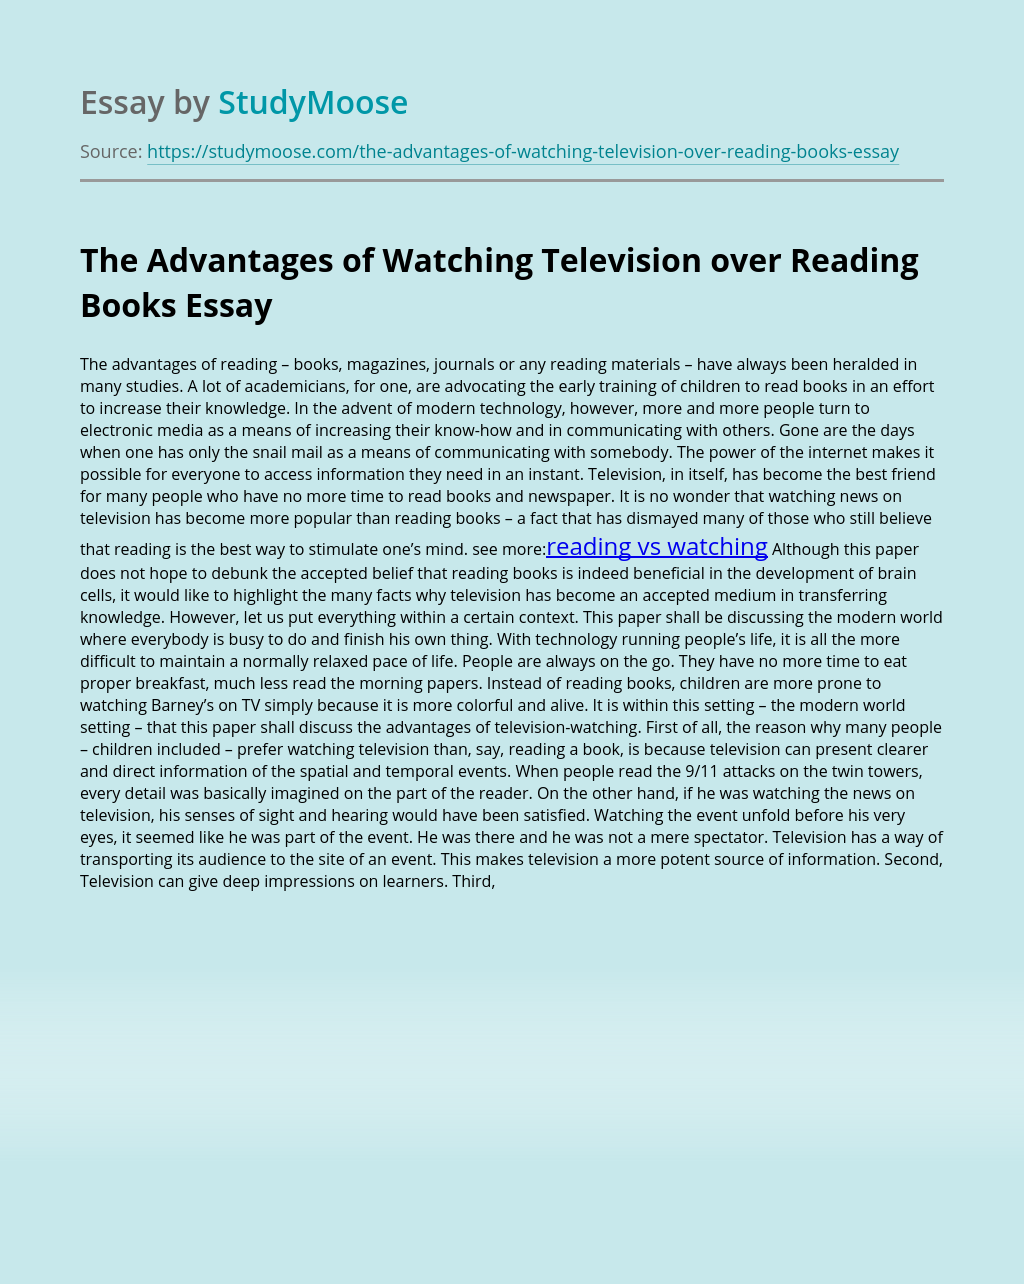 The Advantages of Watching Television over Reading Books